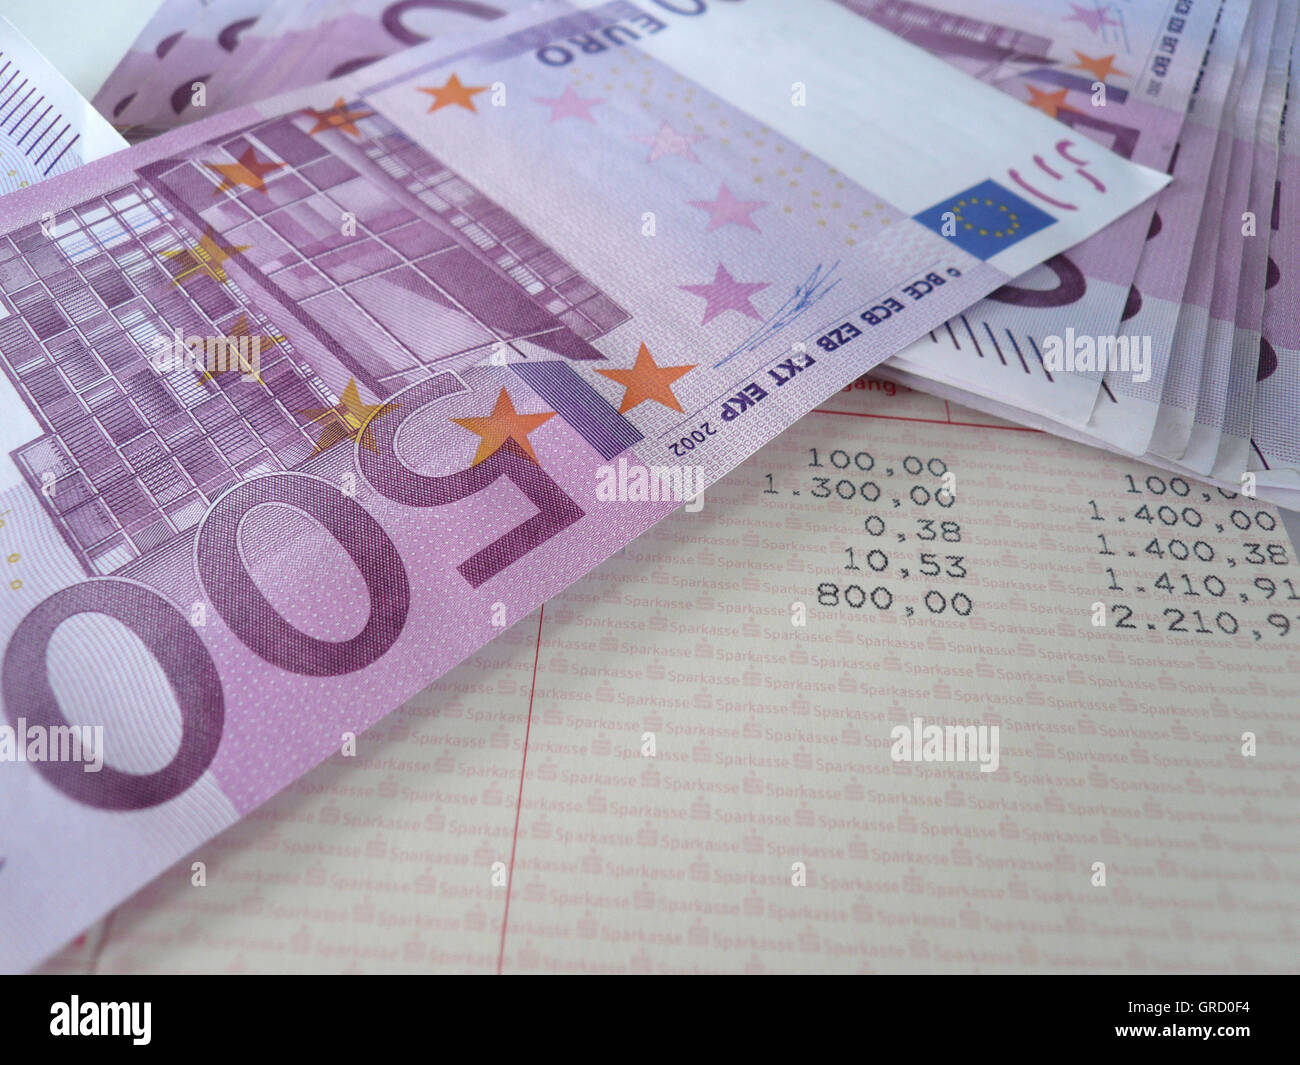 Is Saving Money Still Up To Date, Symbol - Stock Image